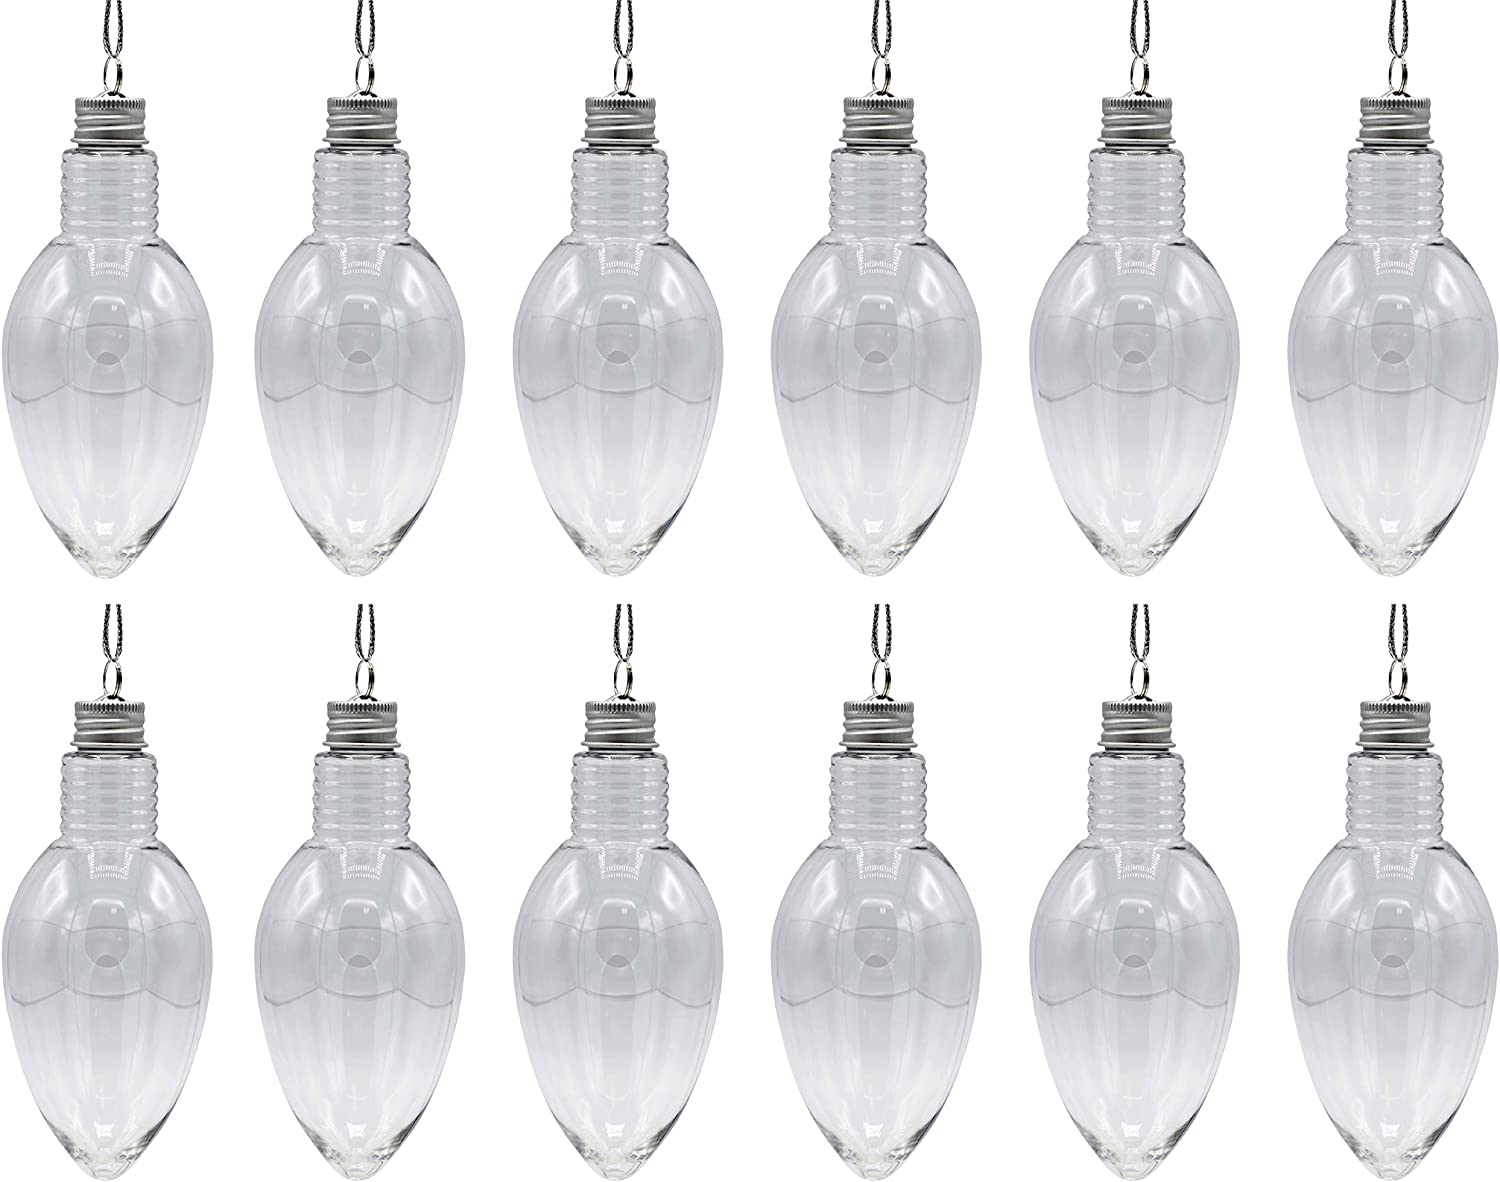 12 Pack - 5.5 Inch Christmas Light Bulb Ornament, Clear Plastic Fillable DIY Light Bulb w/Screw Caps -Great for DIY Crafts, Candy